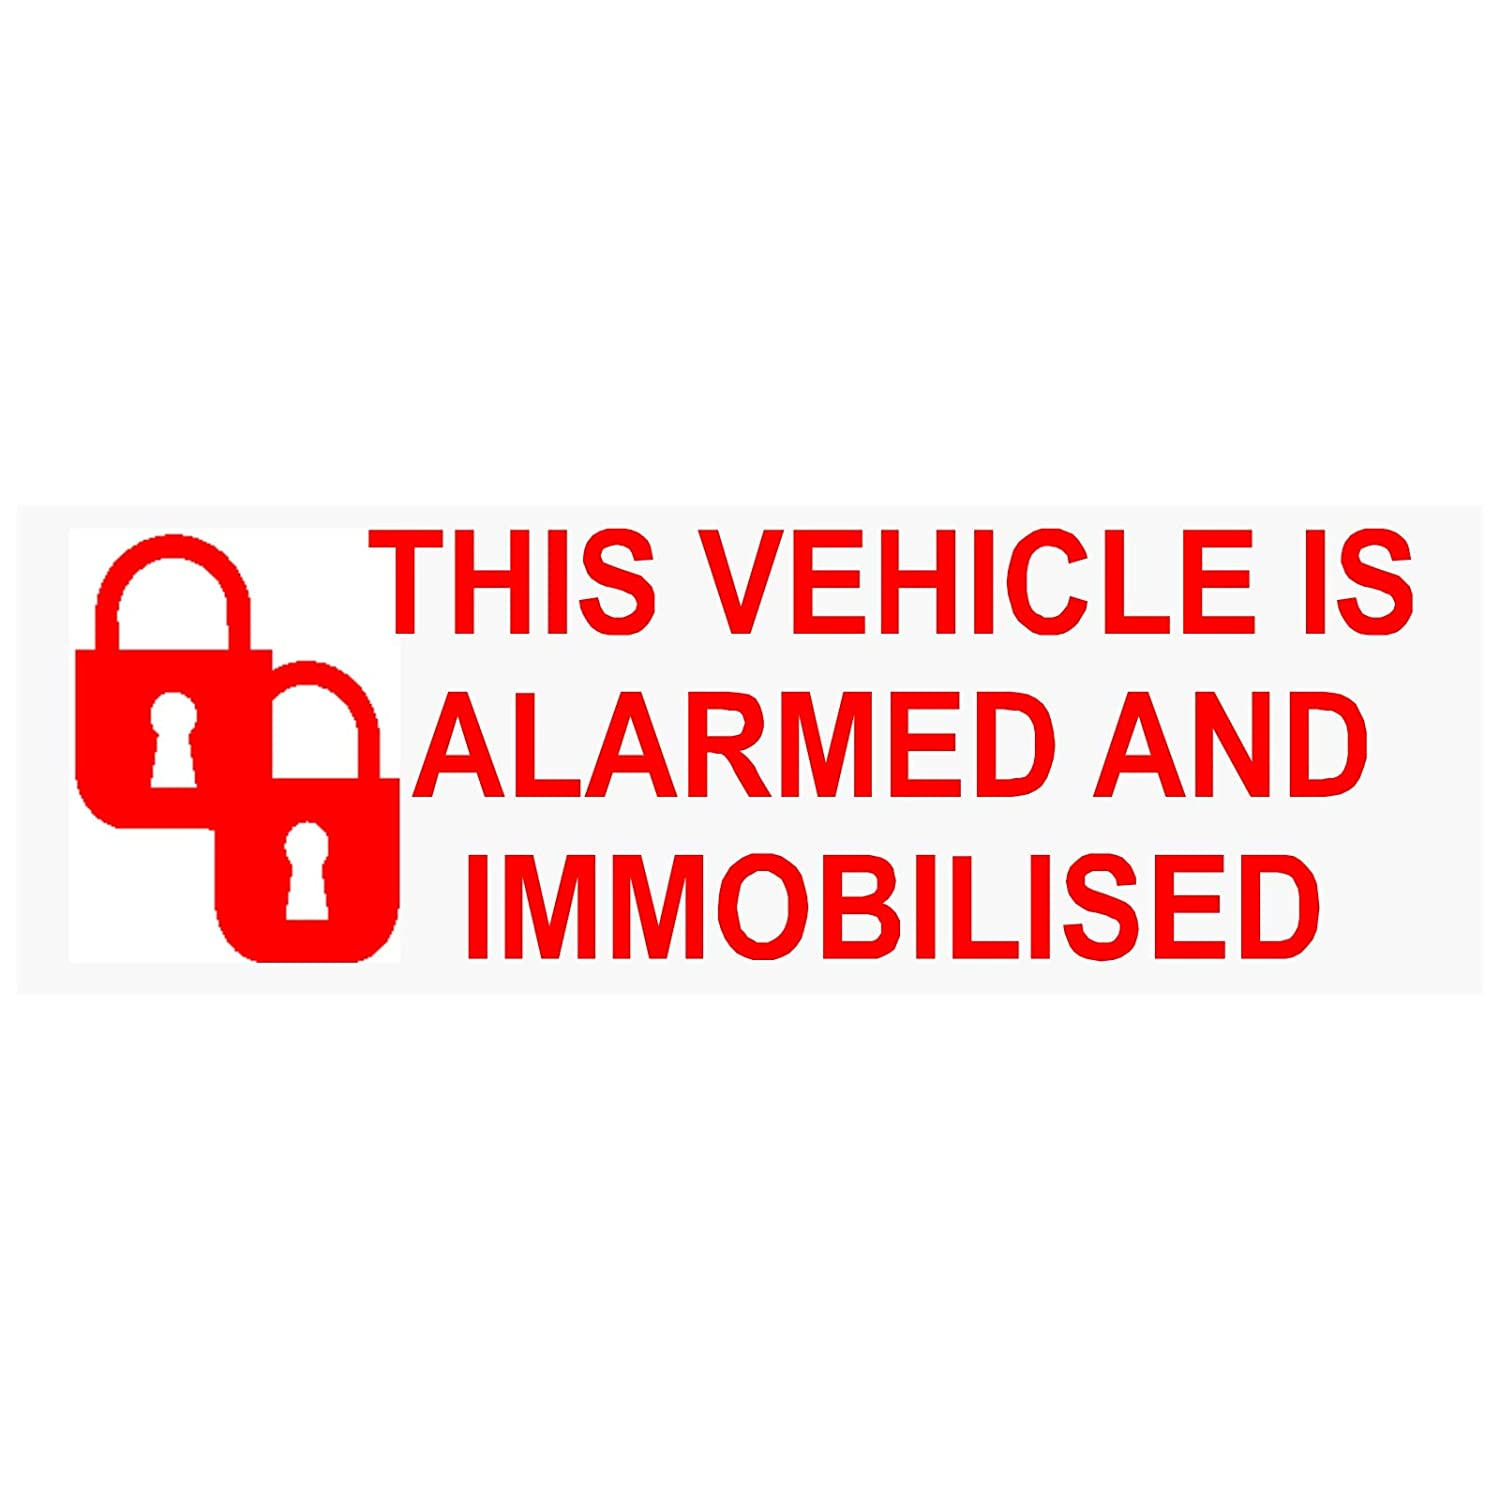 Platinum Place 6  x Alarm, Wegfahrsperre stickers-padlock-red/clear-alarmed und immobilised 2-signs-car, Van, LKW, Wohnwagen, Wohnmobil, Truck, Taxi, Minicab, Auto, groß